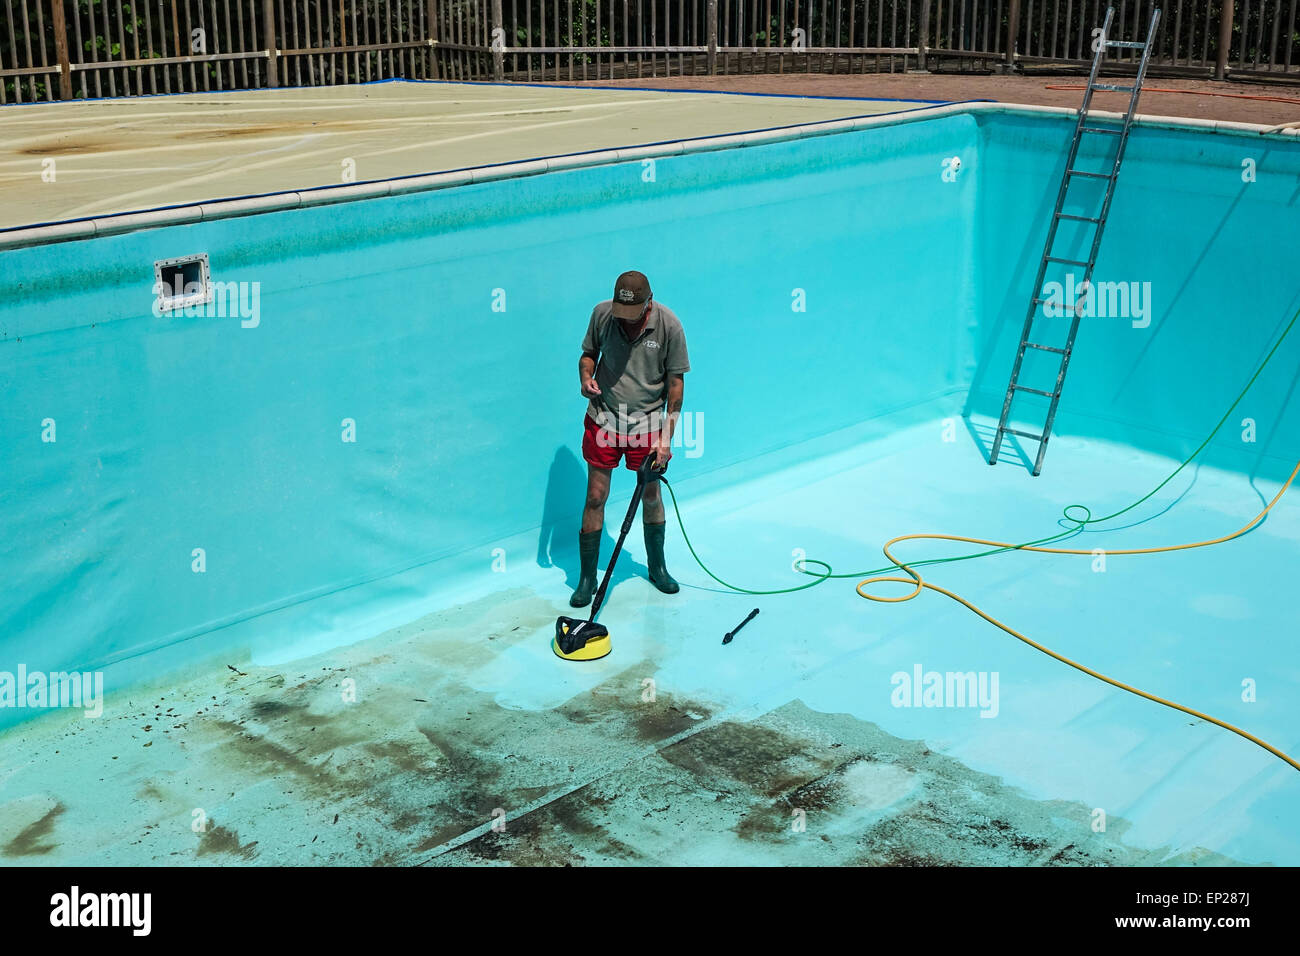 Karcher pressure washer power jet wash patio attachment being used by middle aged man wearing shorts to clean swimming - Stock Image